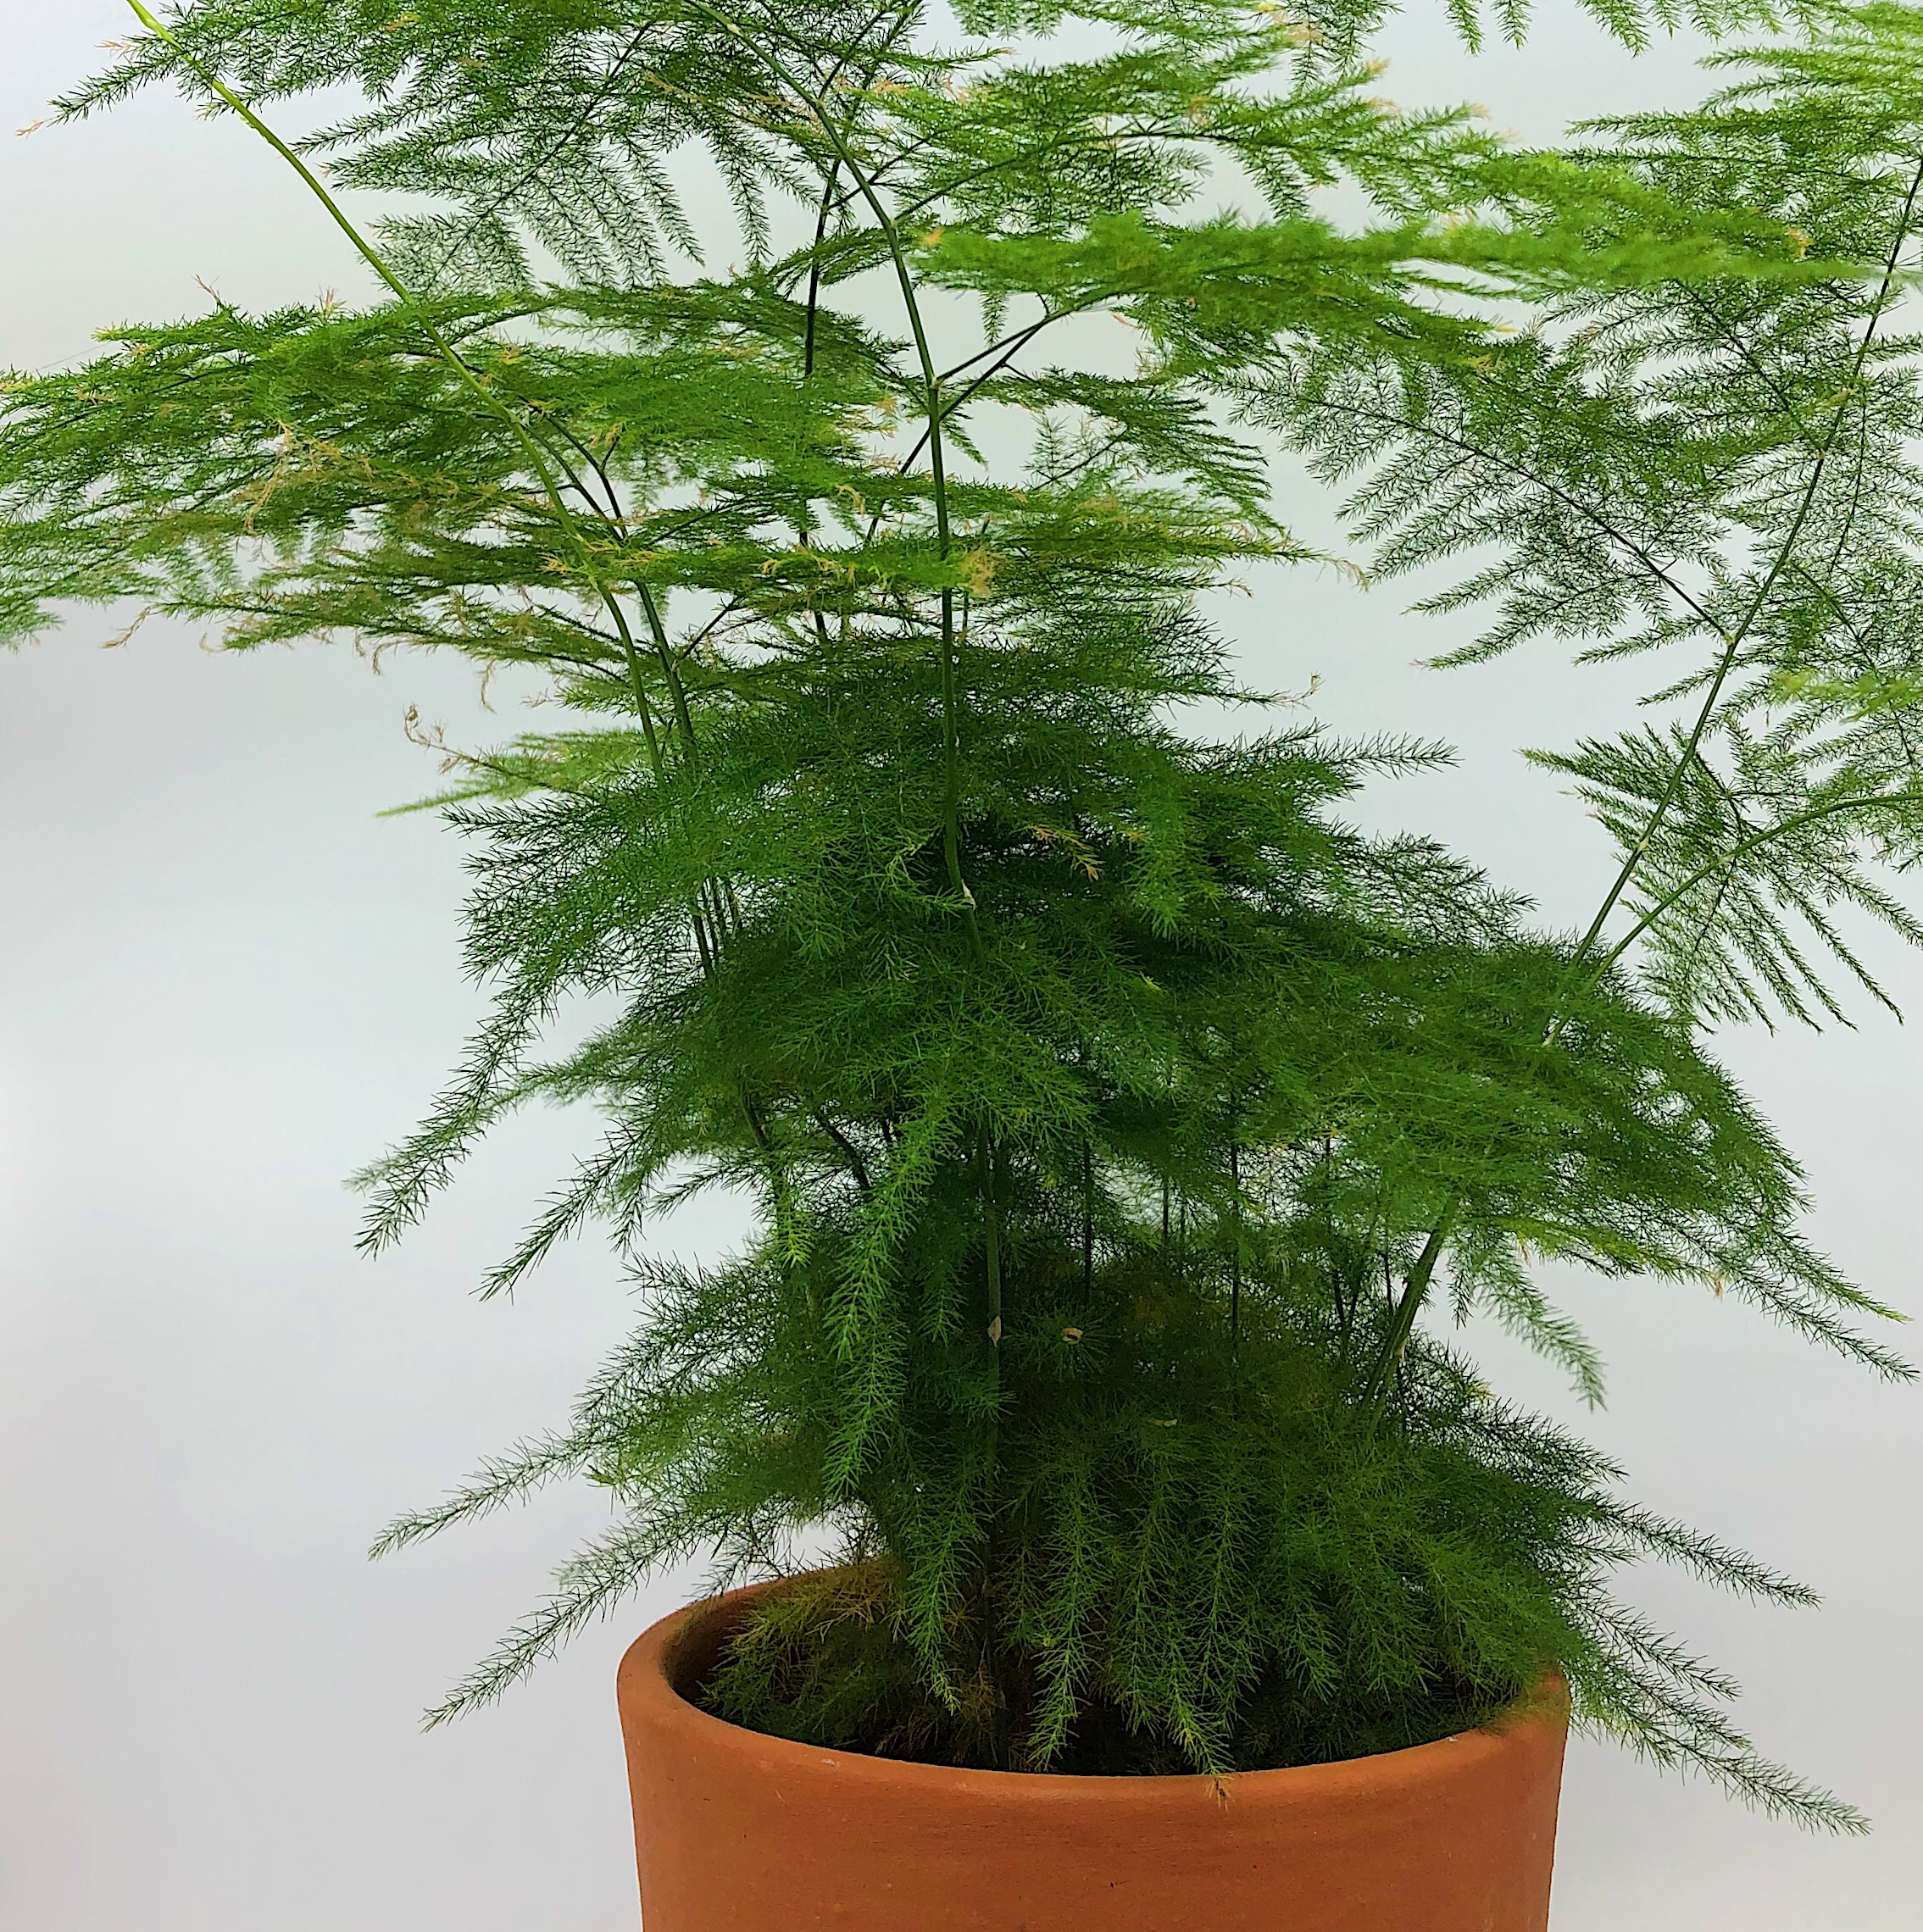 #1 Asparagus Fern - {Asparagus Setaceus}The fluffy asparagus fern is a surprising member of the lily family, and the fine feathery leaves are perfectly suited to a damp environment. Its peculiar name comes from the appearance of the new emerging shoots resembling asparagus - and despite its soft appearance, there are tiny thorns hidden in the foliage.